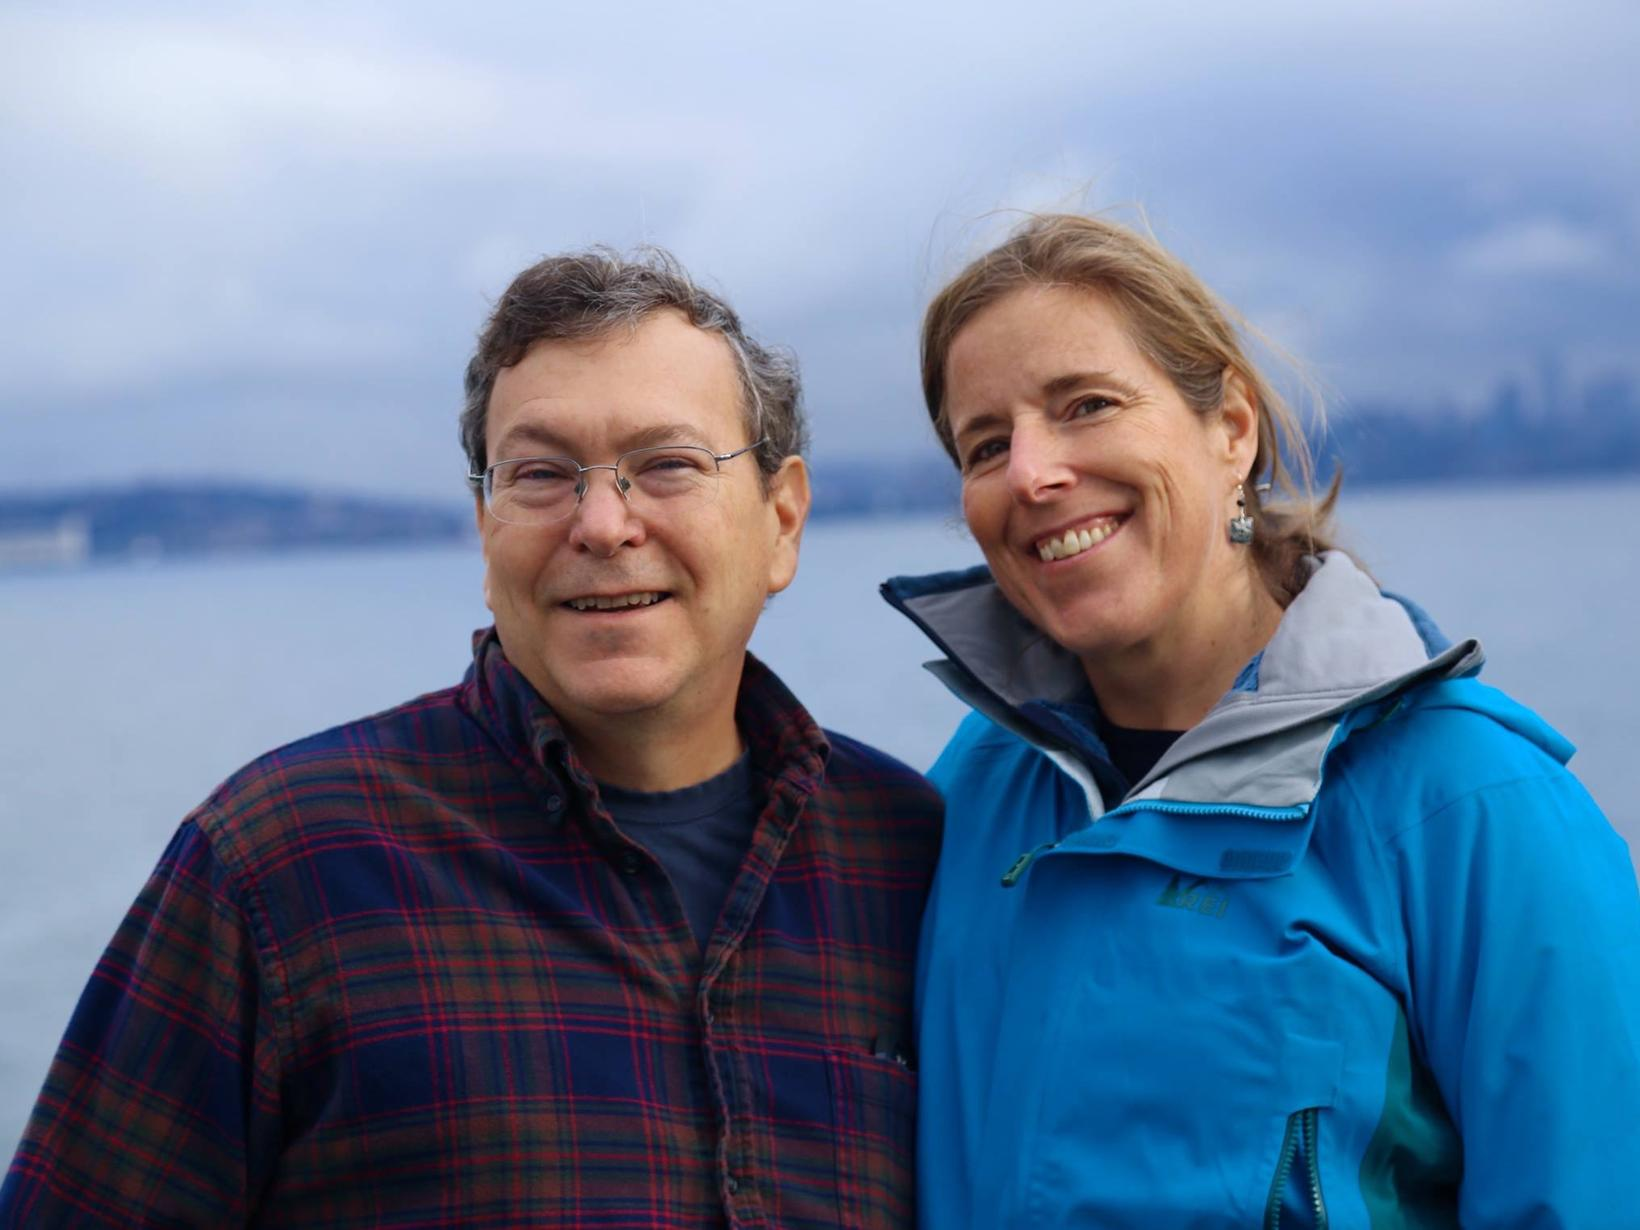 Jeanne & Jeff from Gig Harbor, Washington, United States